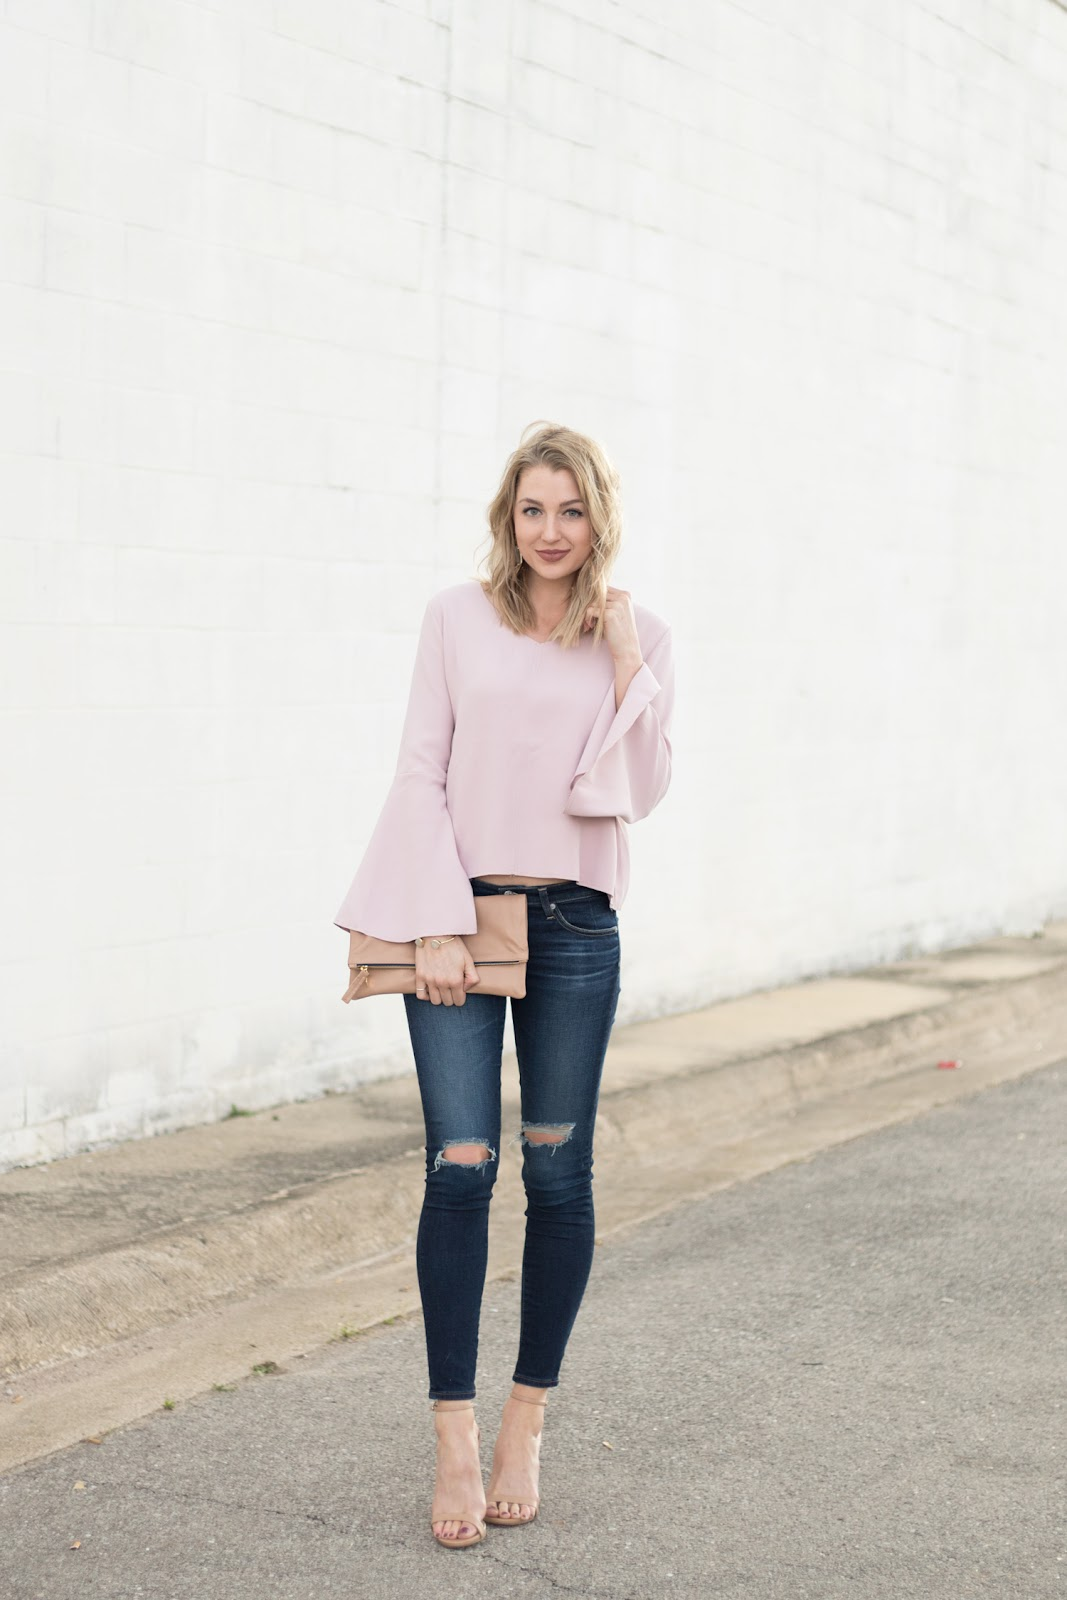 Cute bell sleeve top with jeans